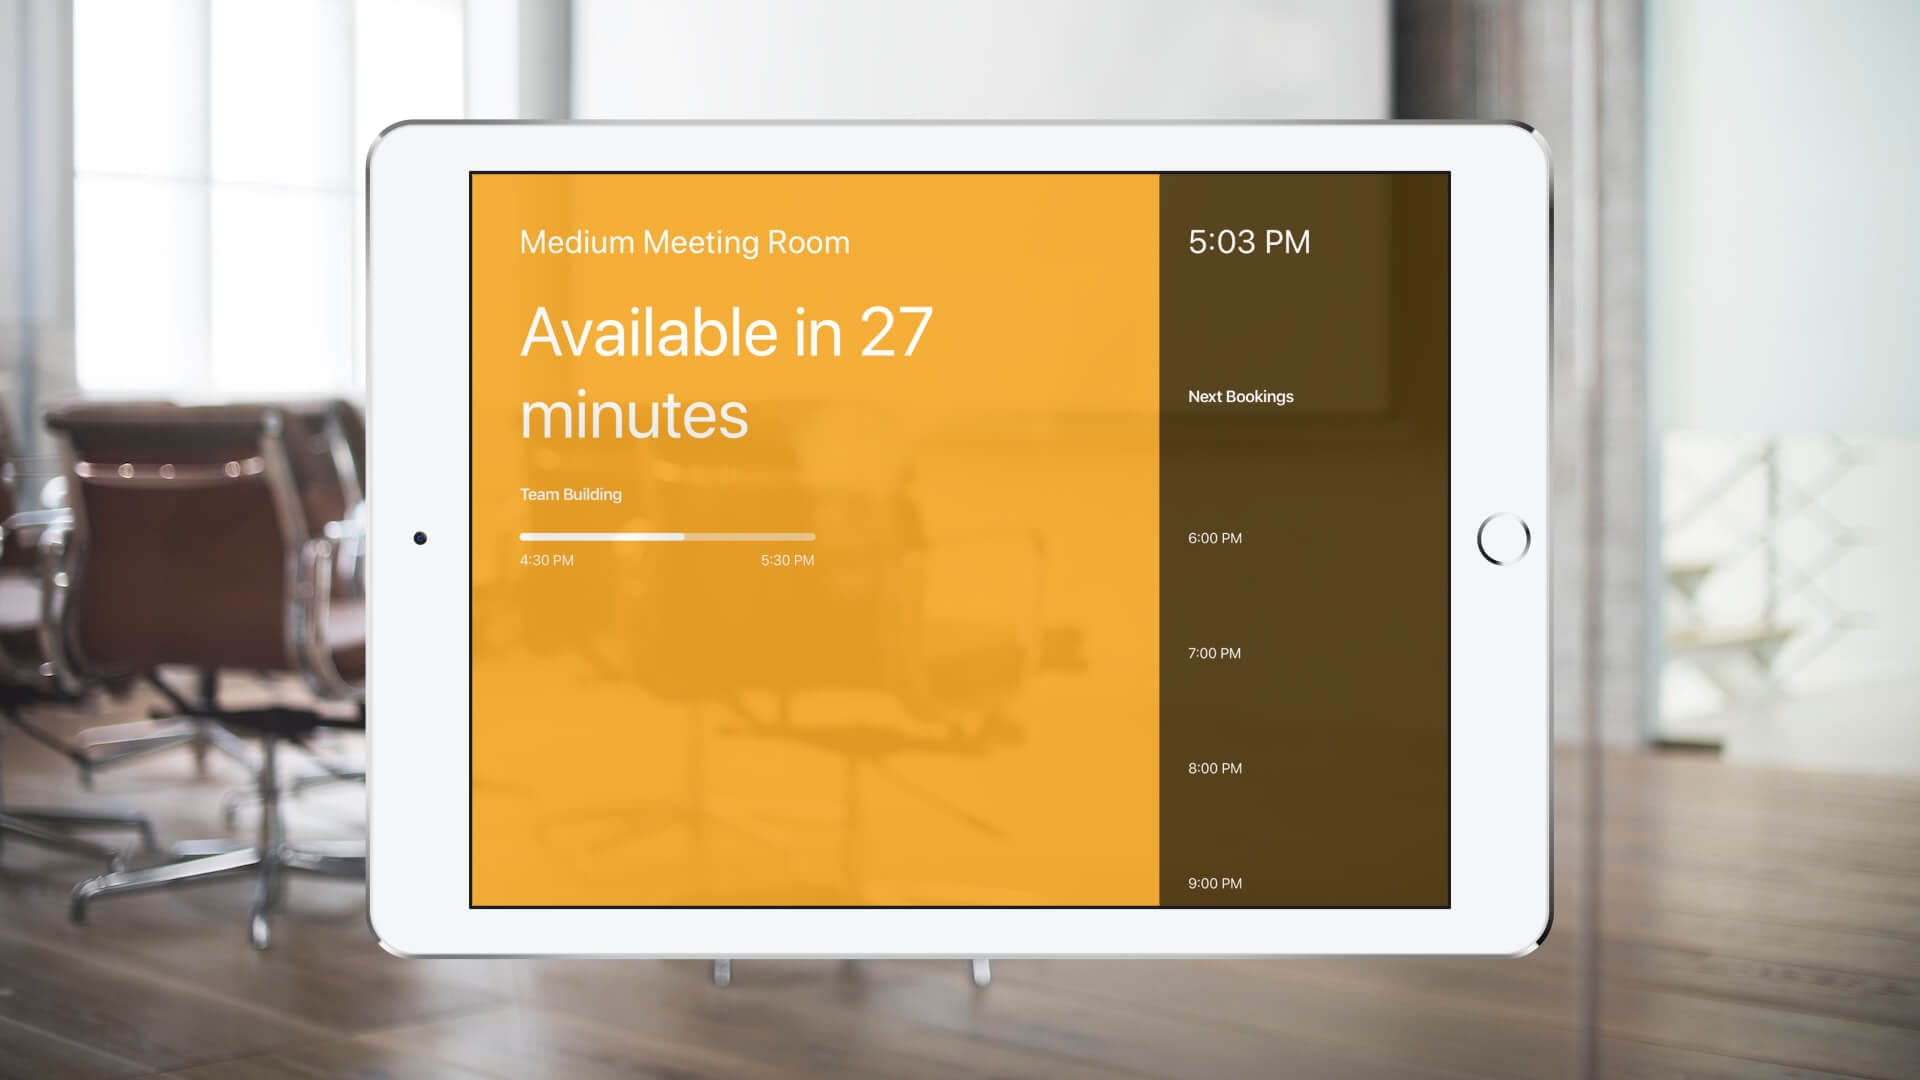 andcards Meeting Room Display on iPad 9.7 tablet meeting room display